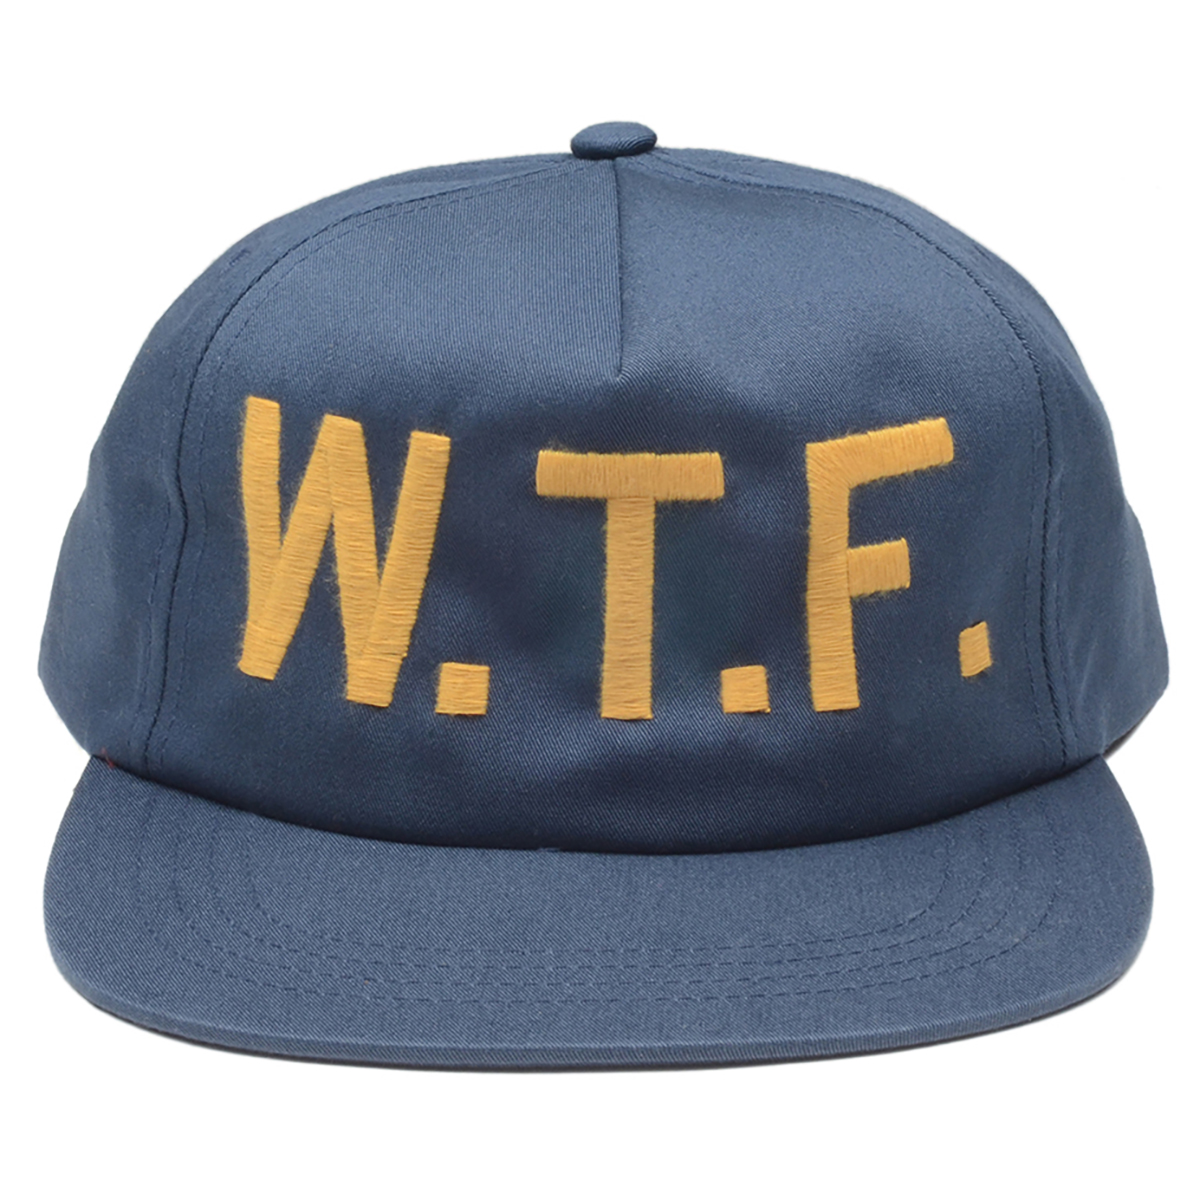 xwtf-cap-navy.jpg.pagespeed.ic.QmSnarWw-O